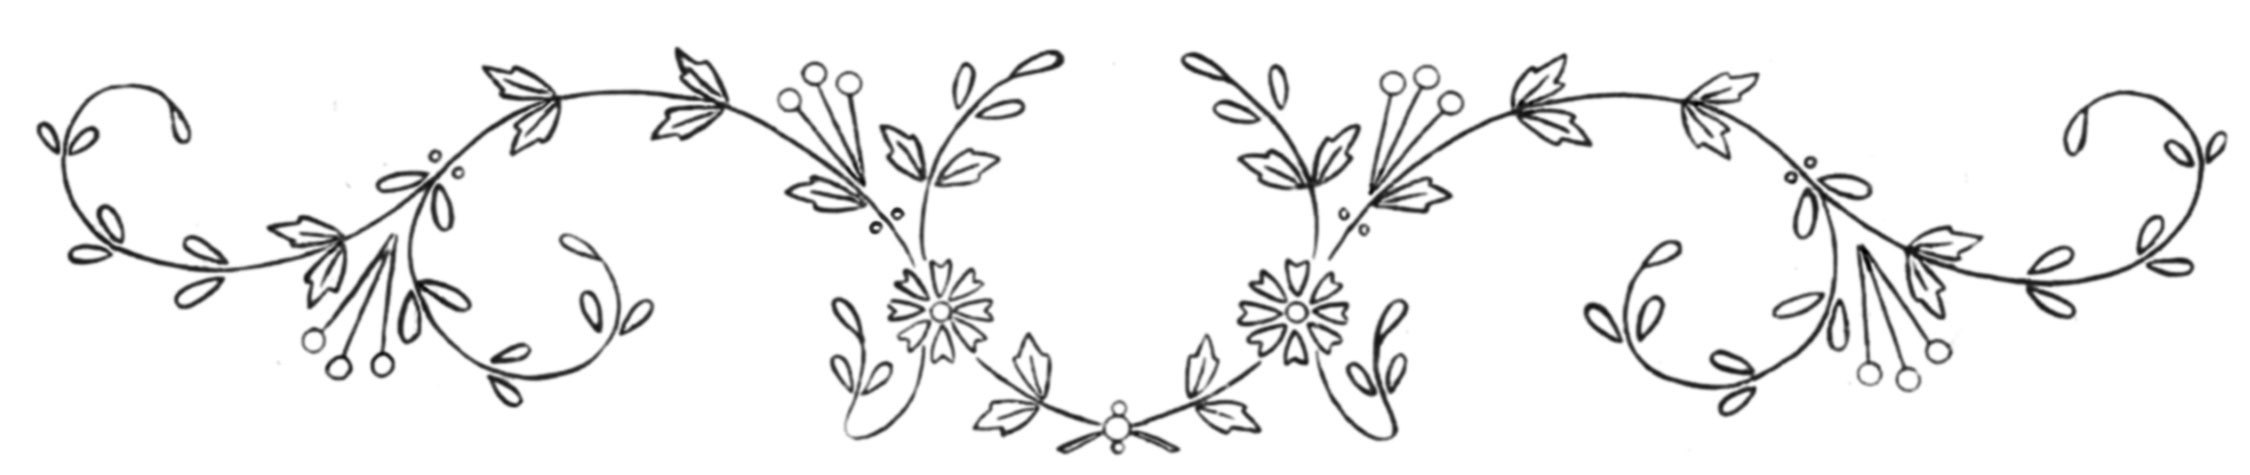 Embroidery Designs Patterns Free Pattern Friday Embroidery Designs For Pillowcases Q Is For